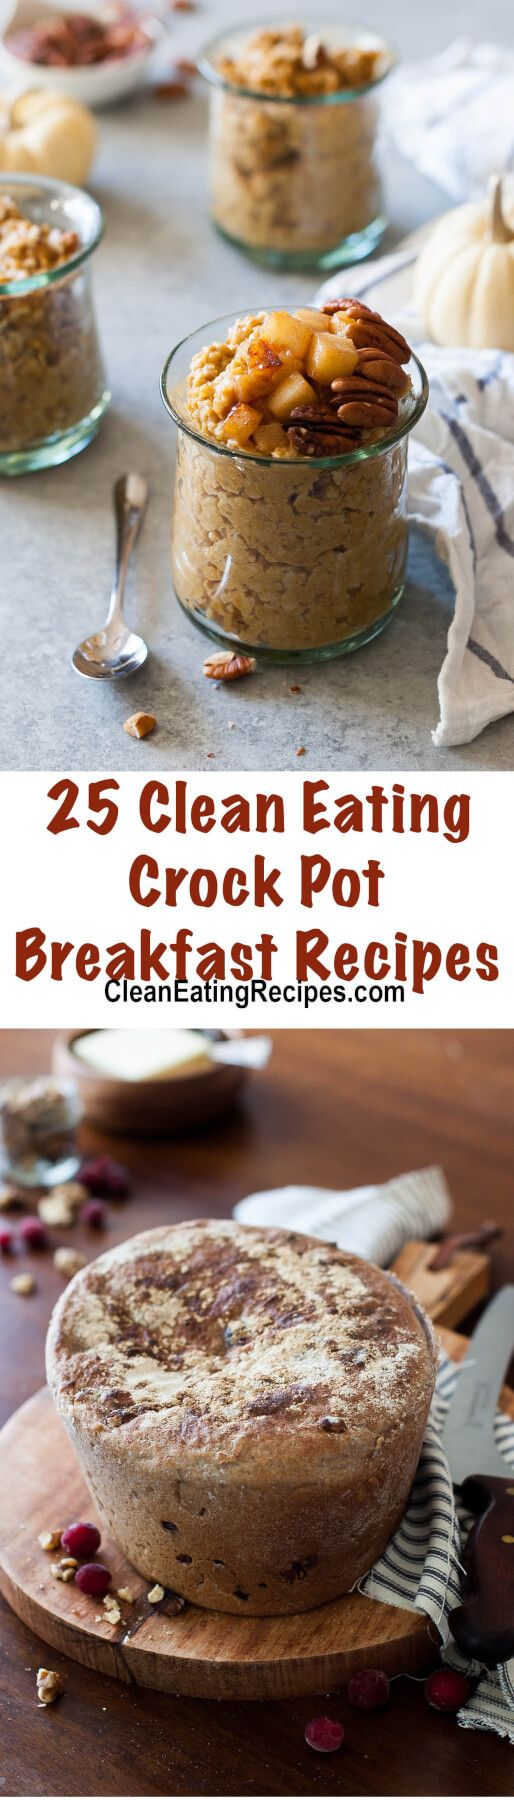 These easy crock pot breakfast recipes are so nutritious and good - you'll want to try them all.